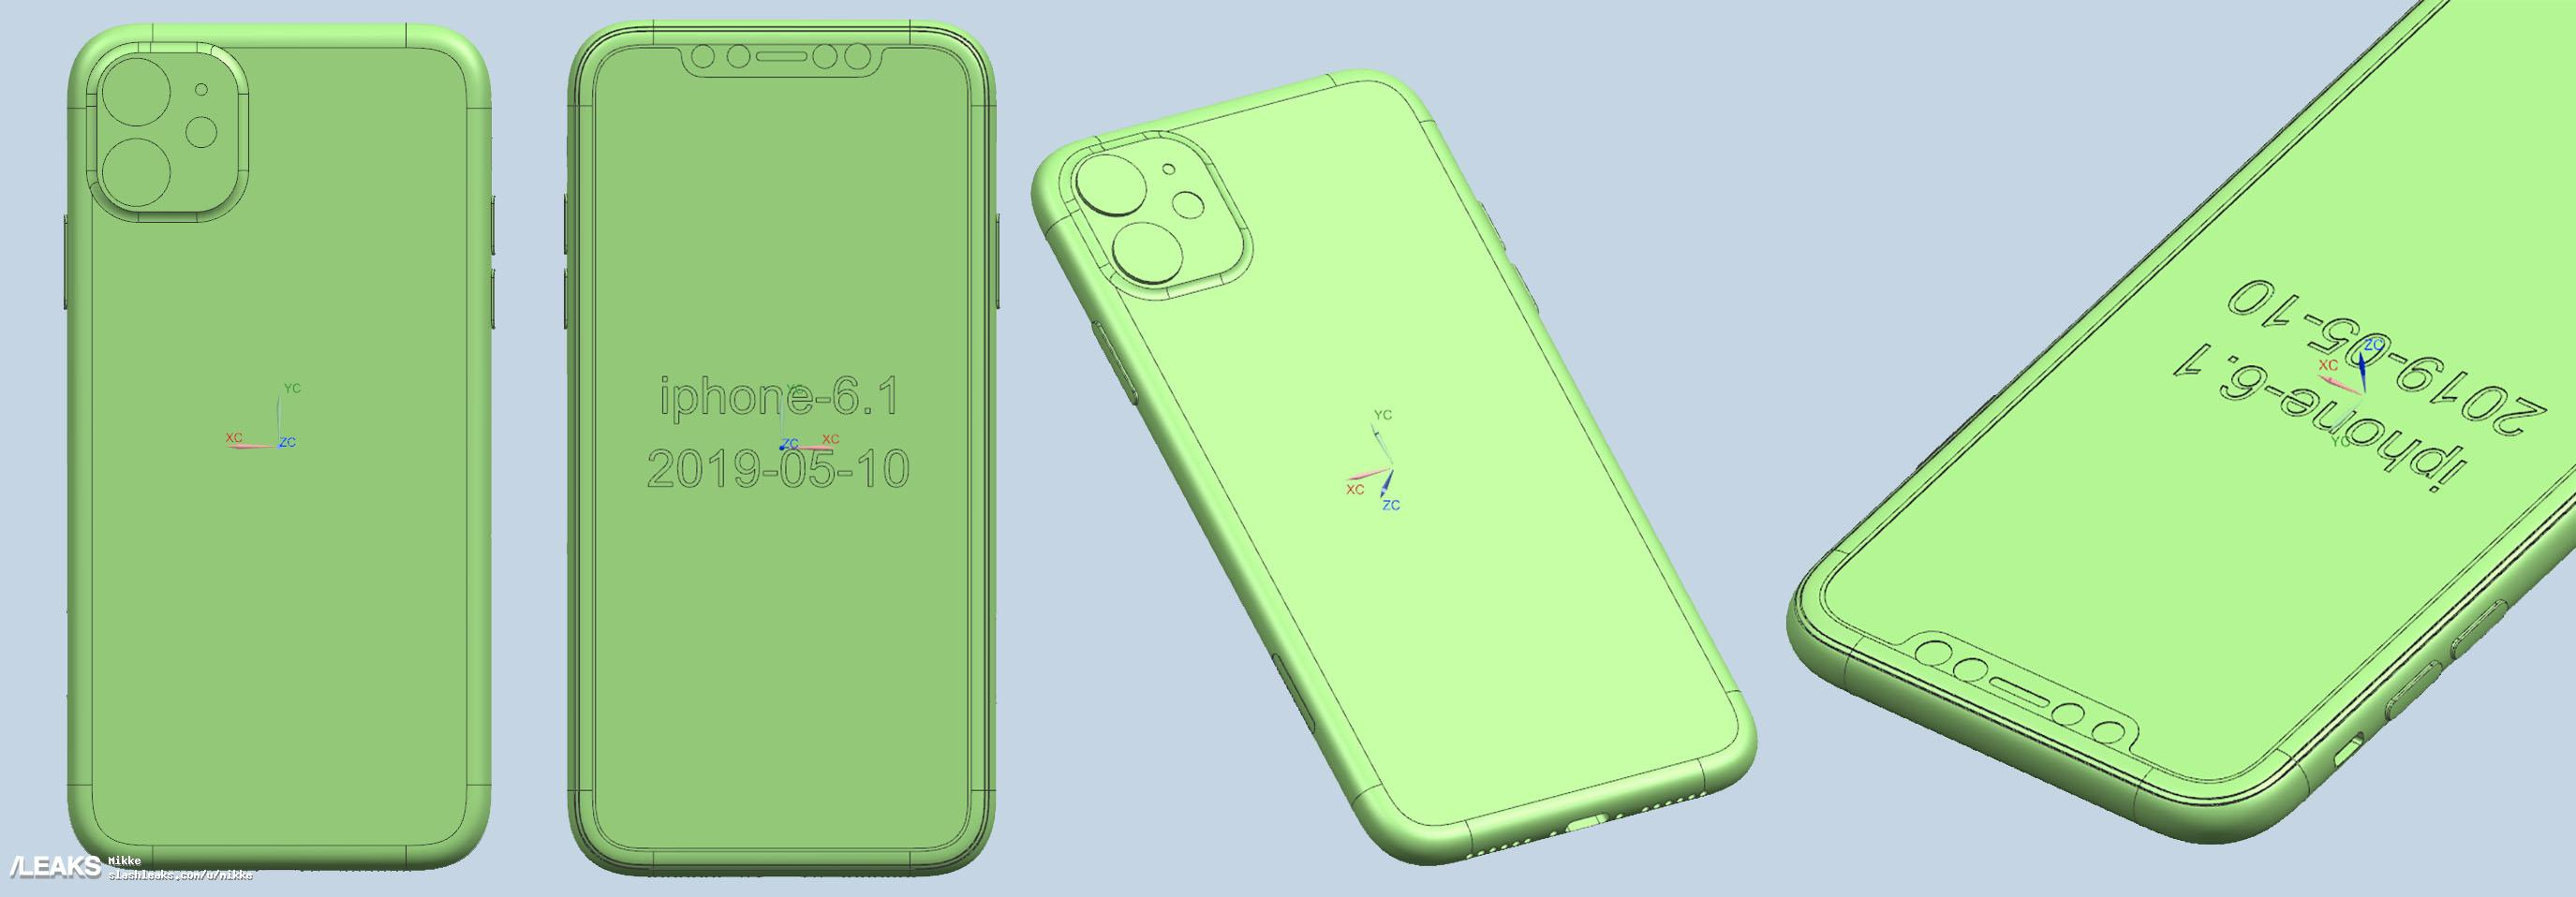 New leaked iPhone 11 renders show the rear camera design 3